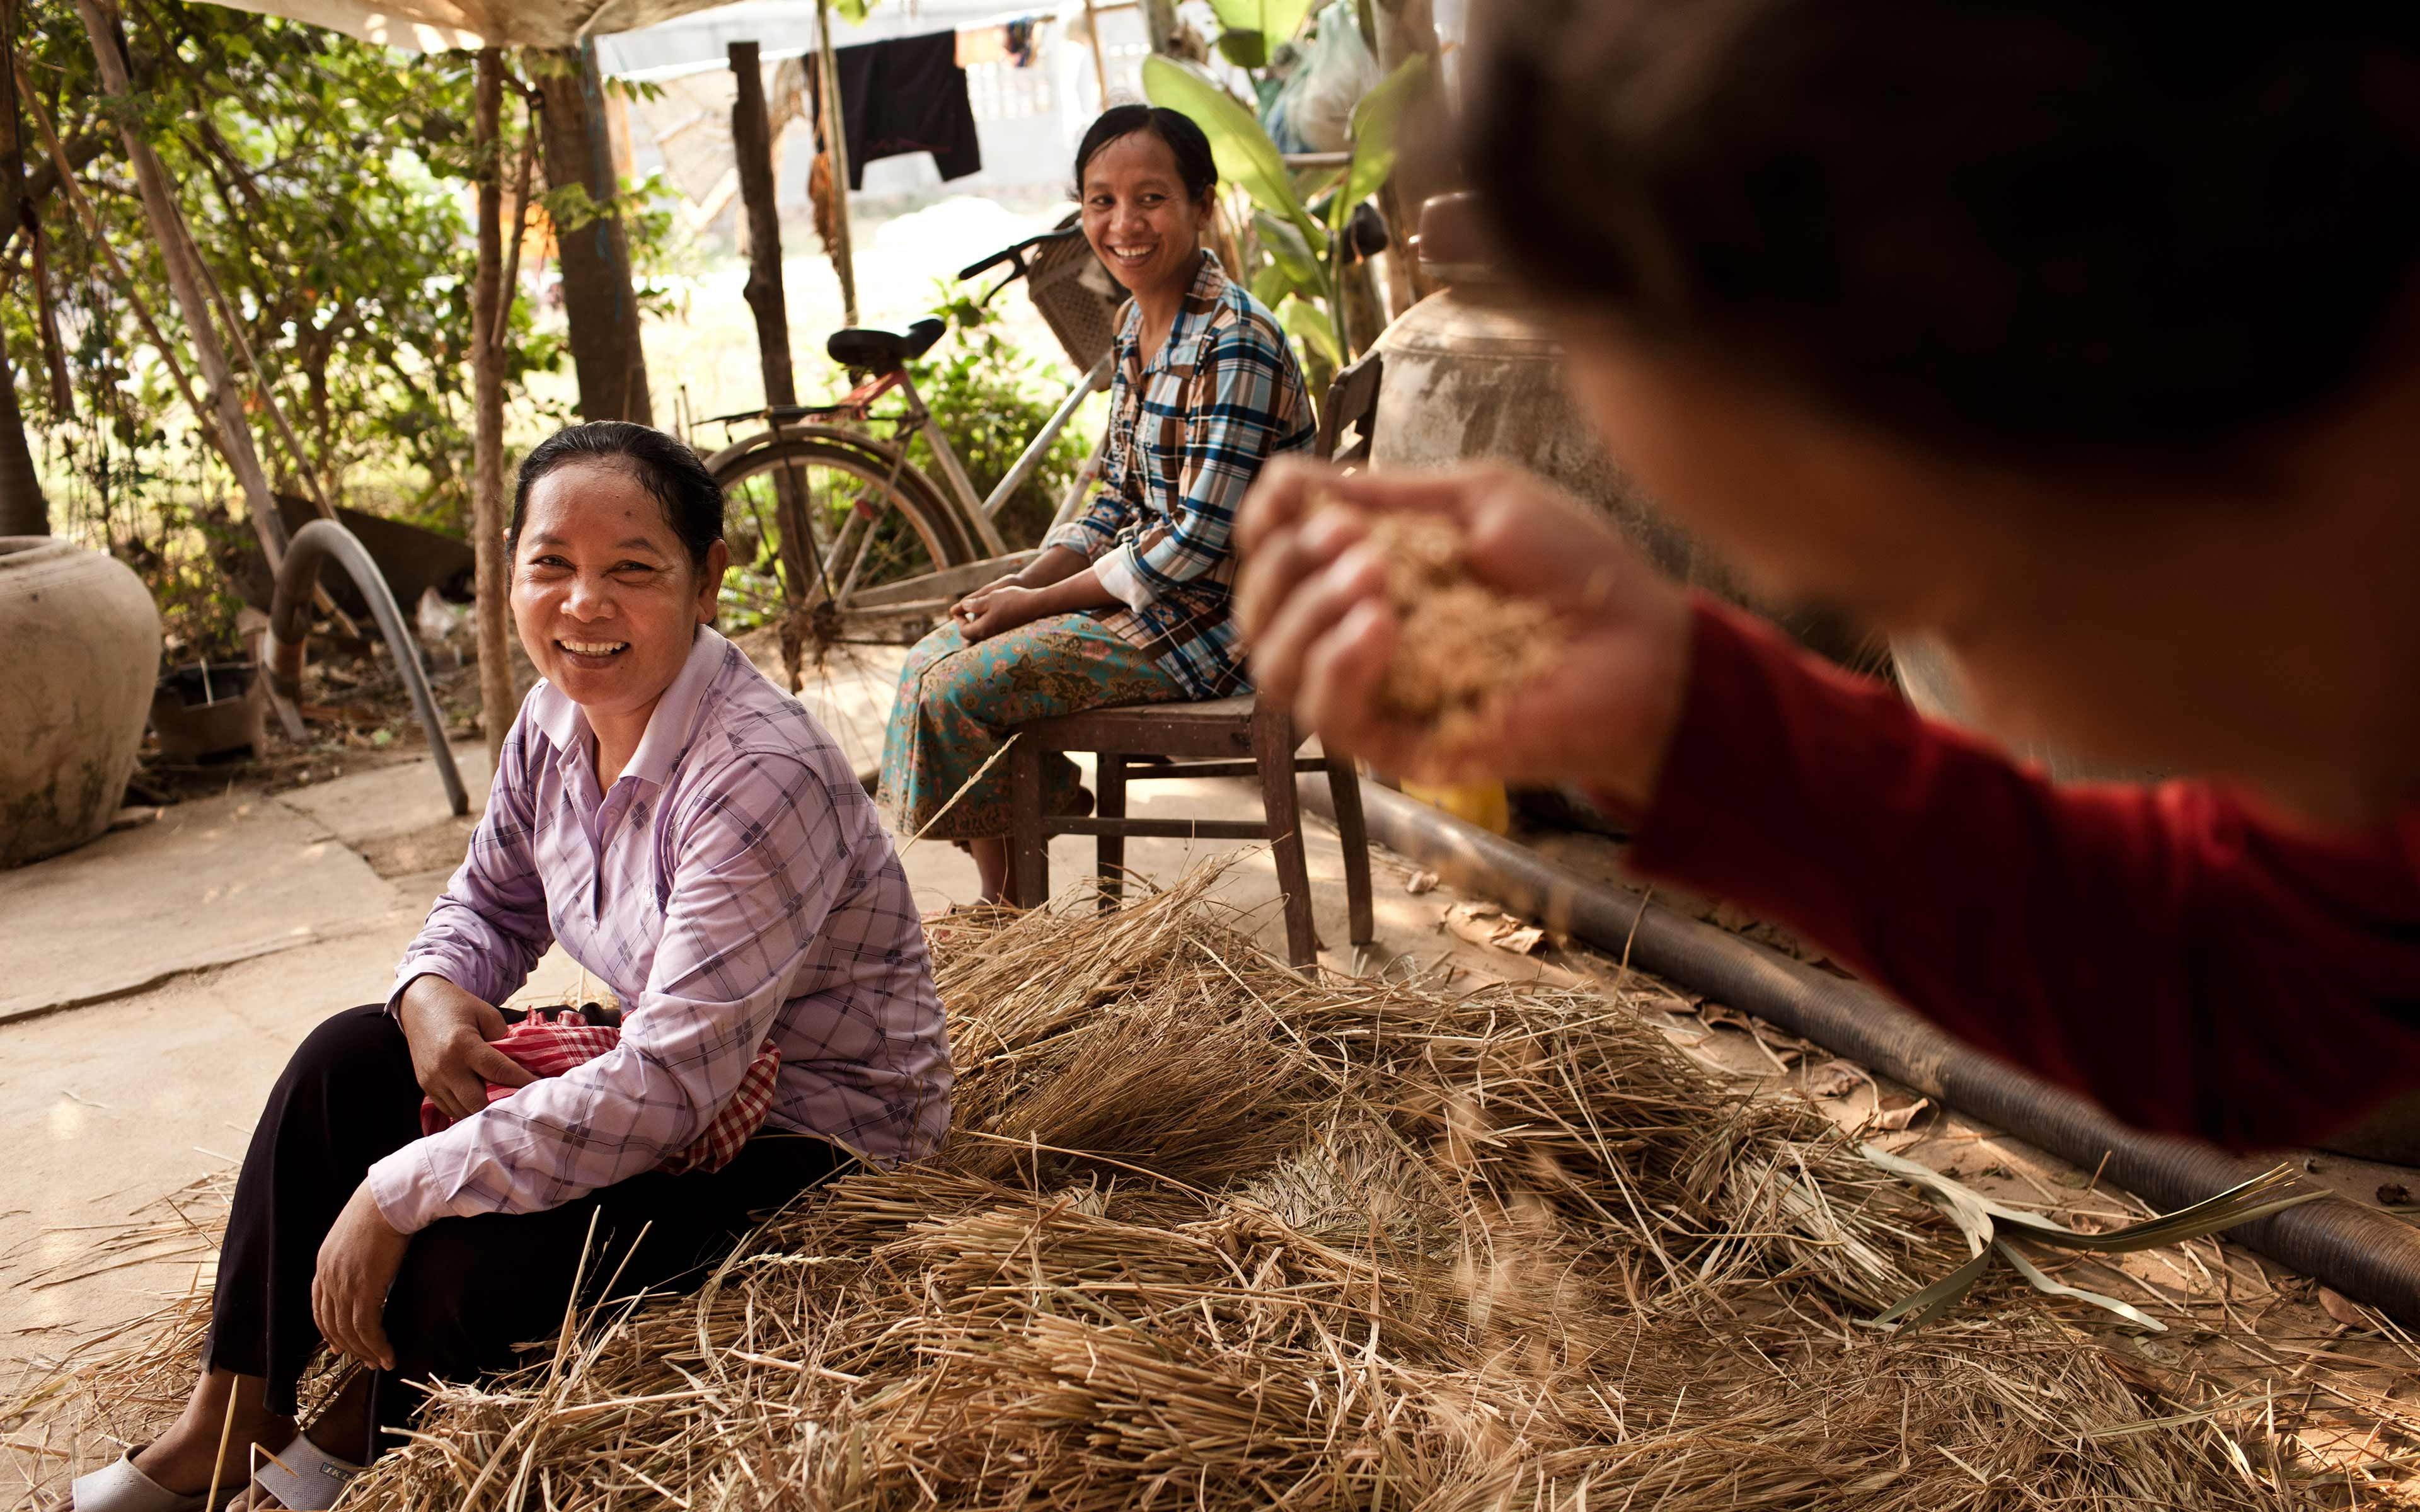 Khek Koeu (left) visits with neighbors at her home in Pursat province. She and six other farmers in her village got specialized training to become rice seed producers, which helps area farmers to access high-quality seed.